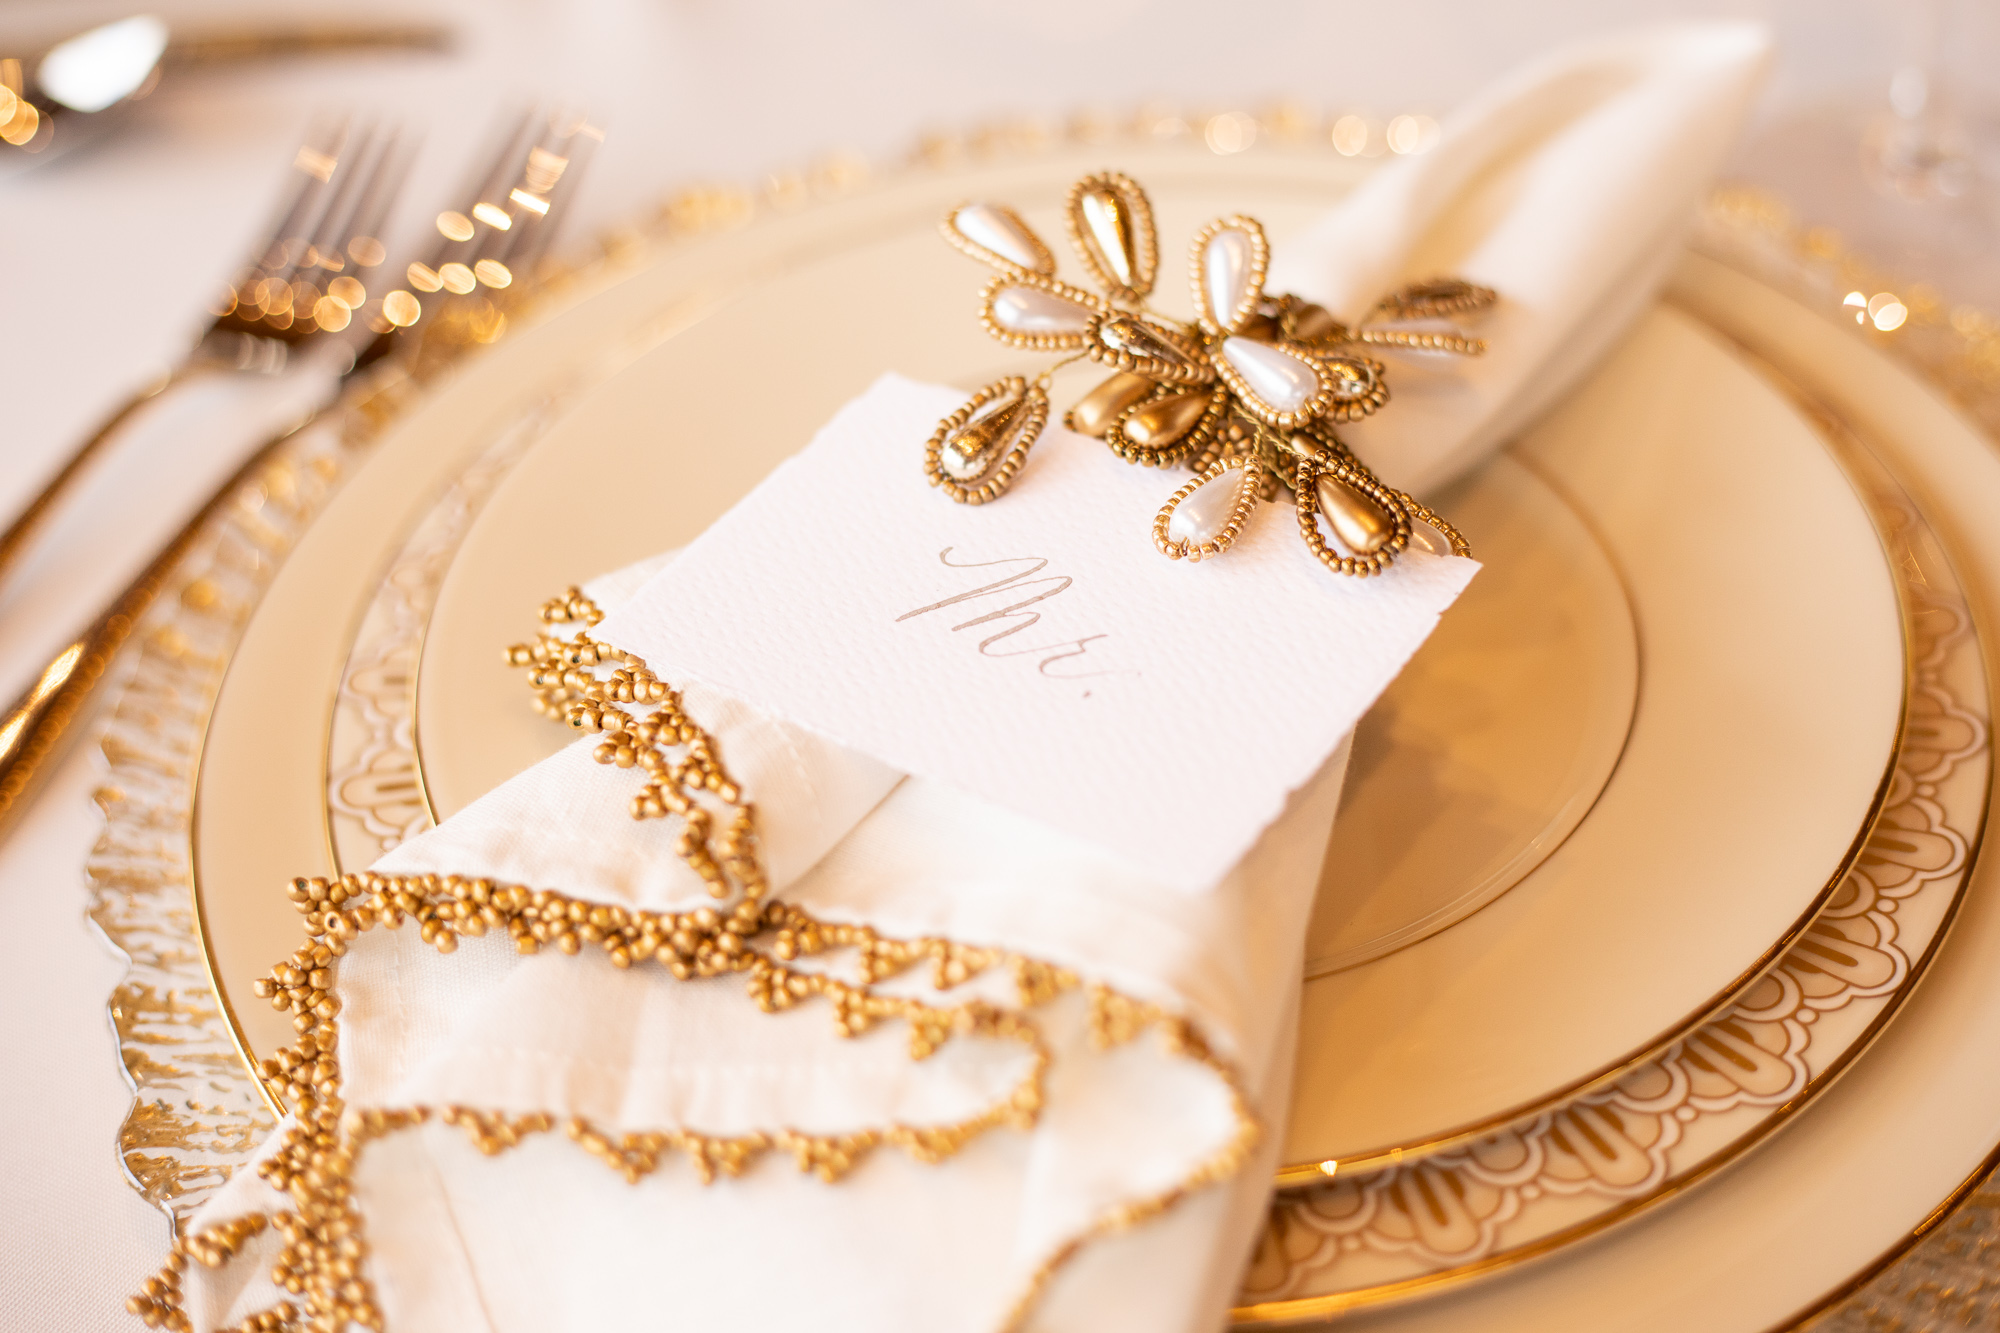 Wood & Grace place cards and Chelsea Party Center sweetheart table settings.